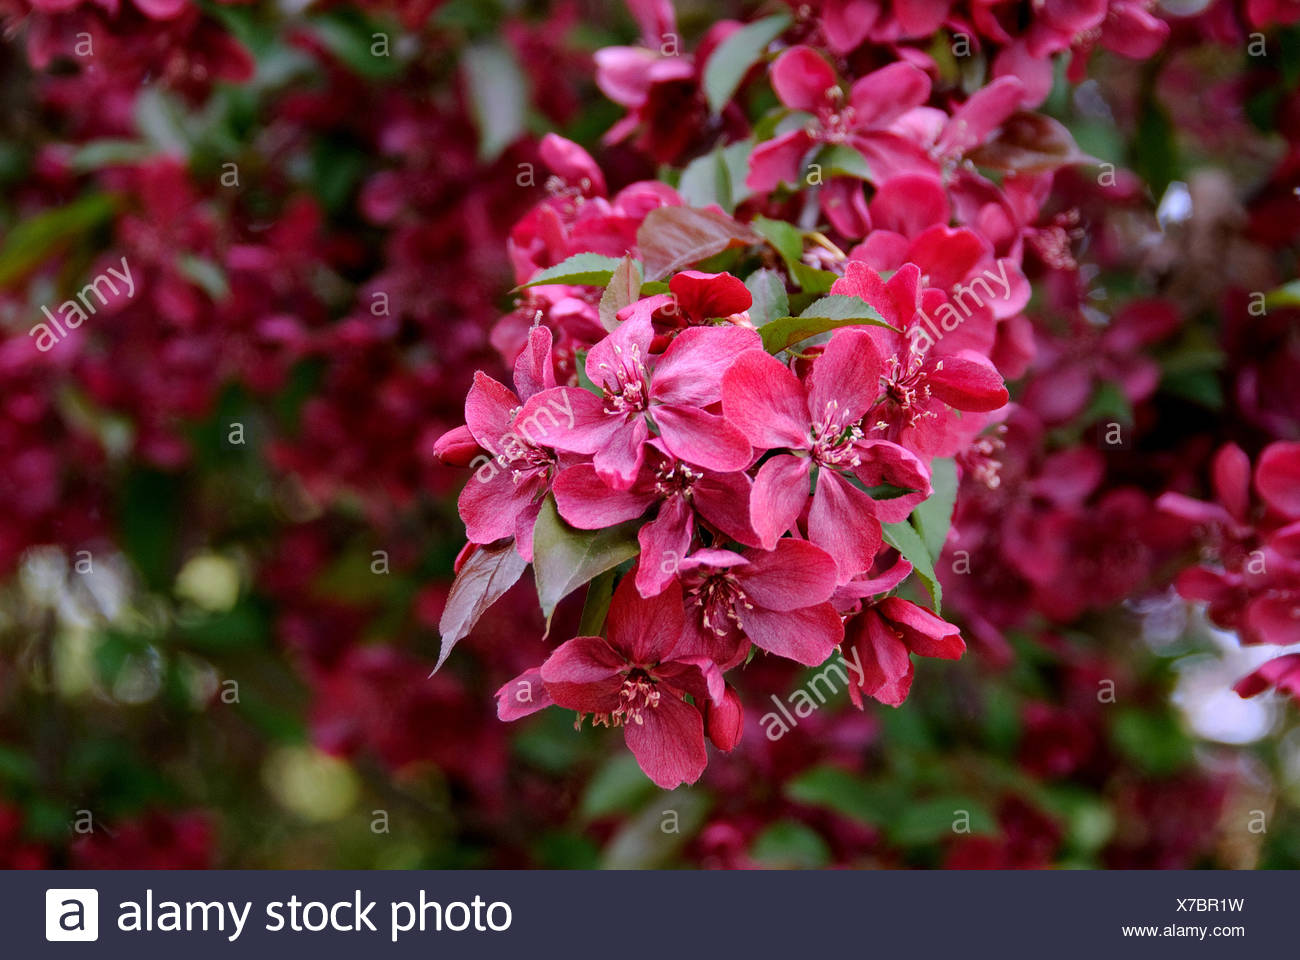 ornamental apple tree (Malus 'Royalty', Malus Royalty), cultivar Royalty, blooming - Stock Image